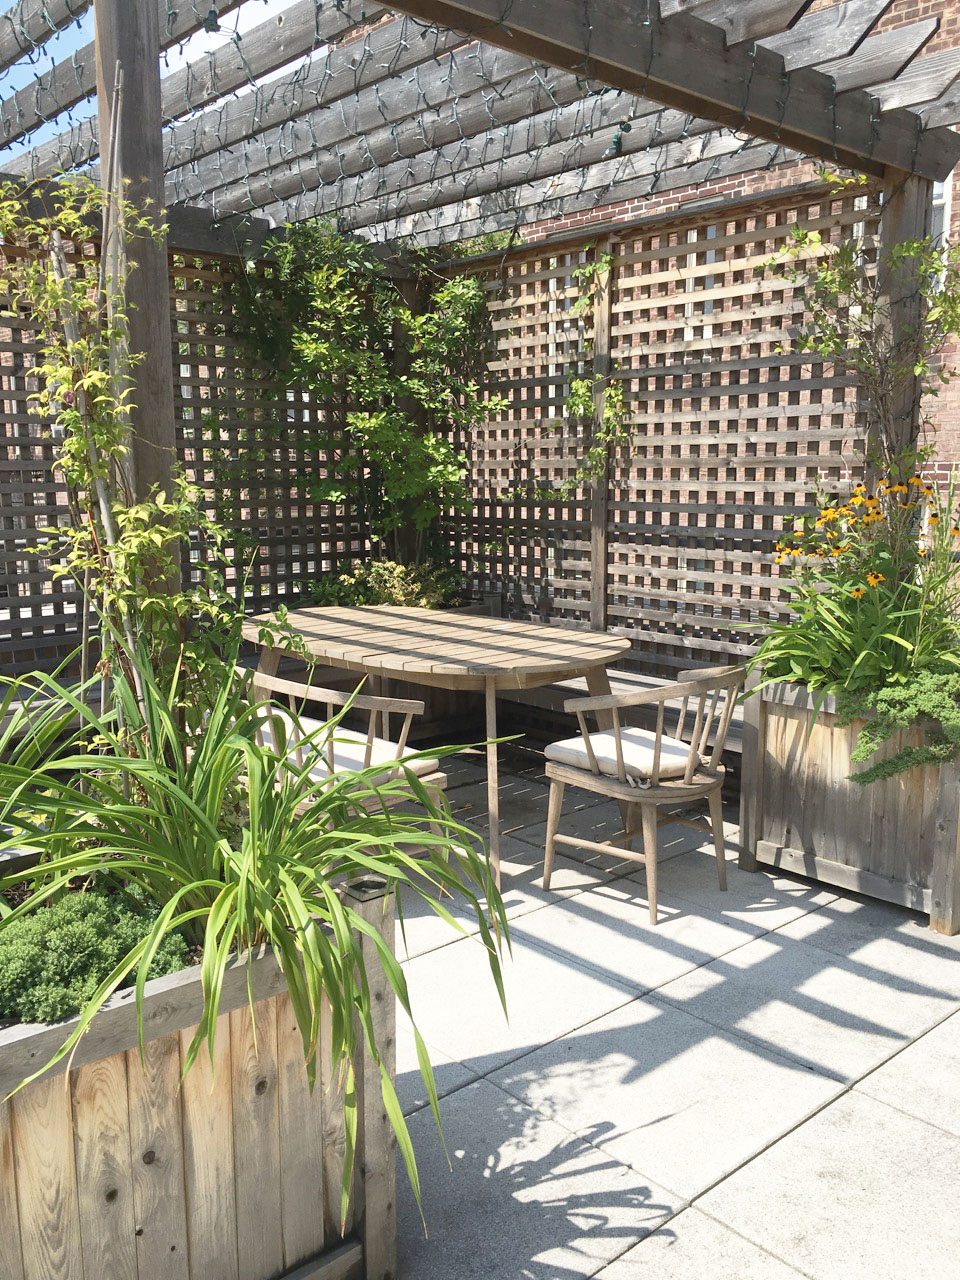 arbor-rooftop-terrace-garden-by-edible-petals-brooklyn.jpg